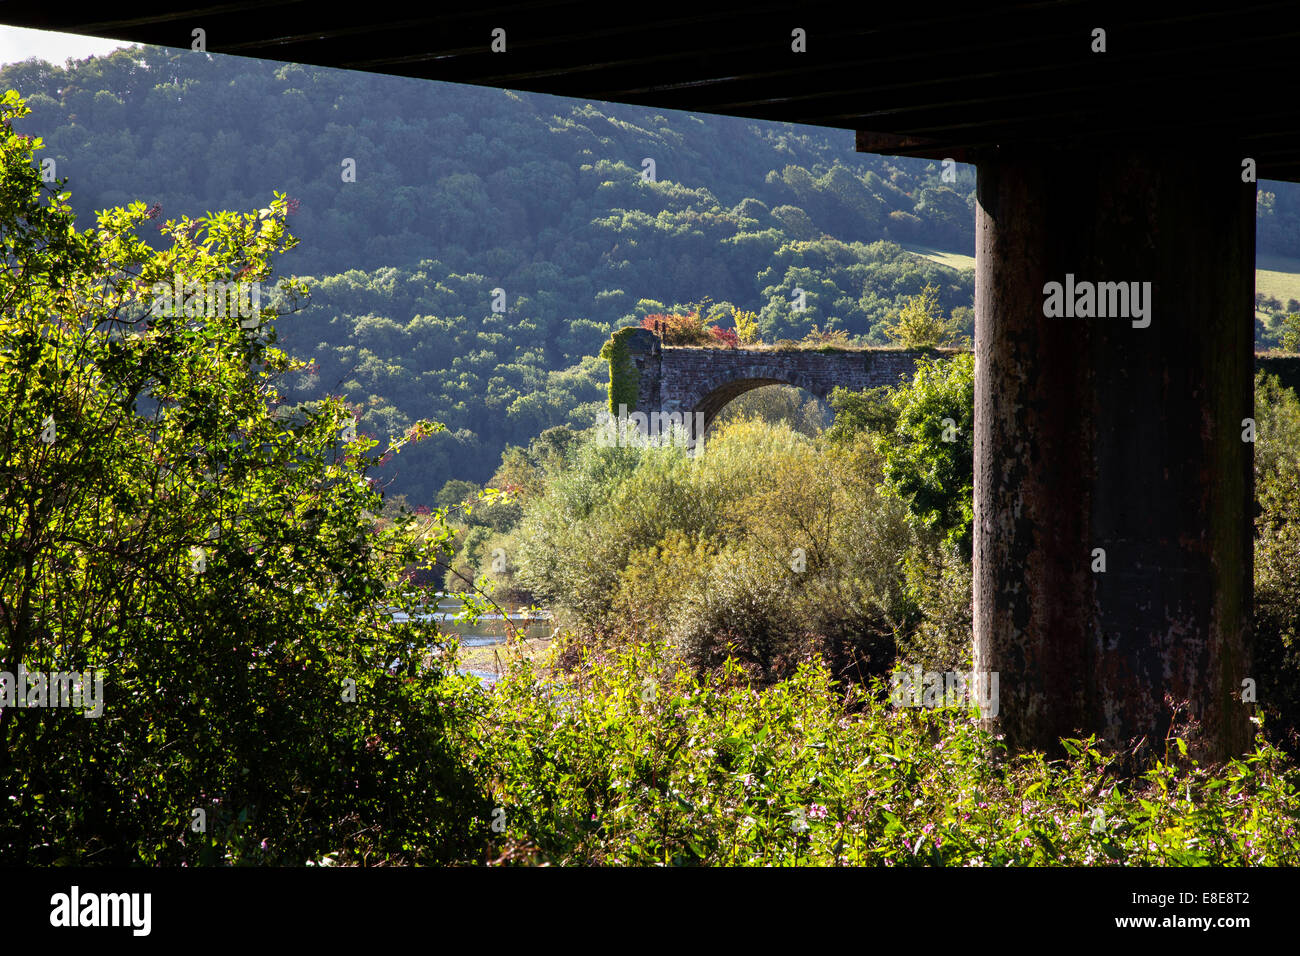 Disused railway viaducts over the river Wye near Monmouth Wales UK - Stock Image